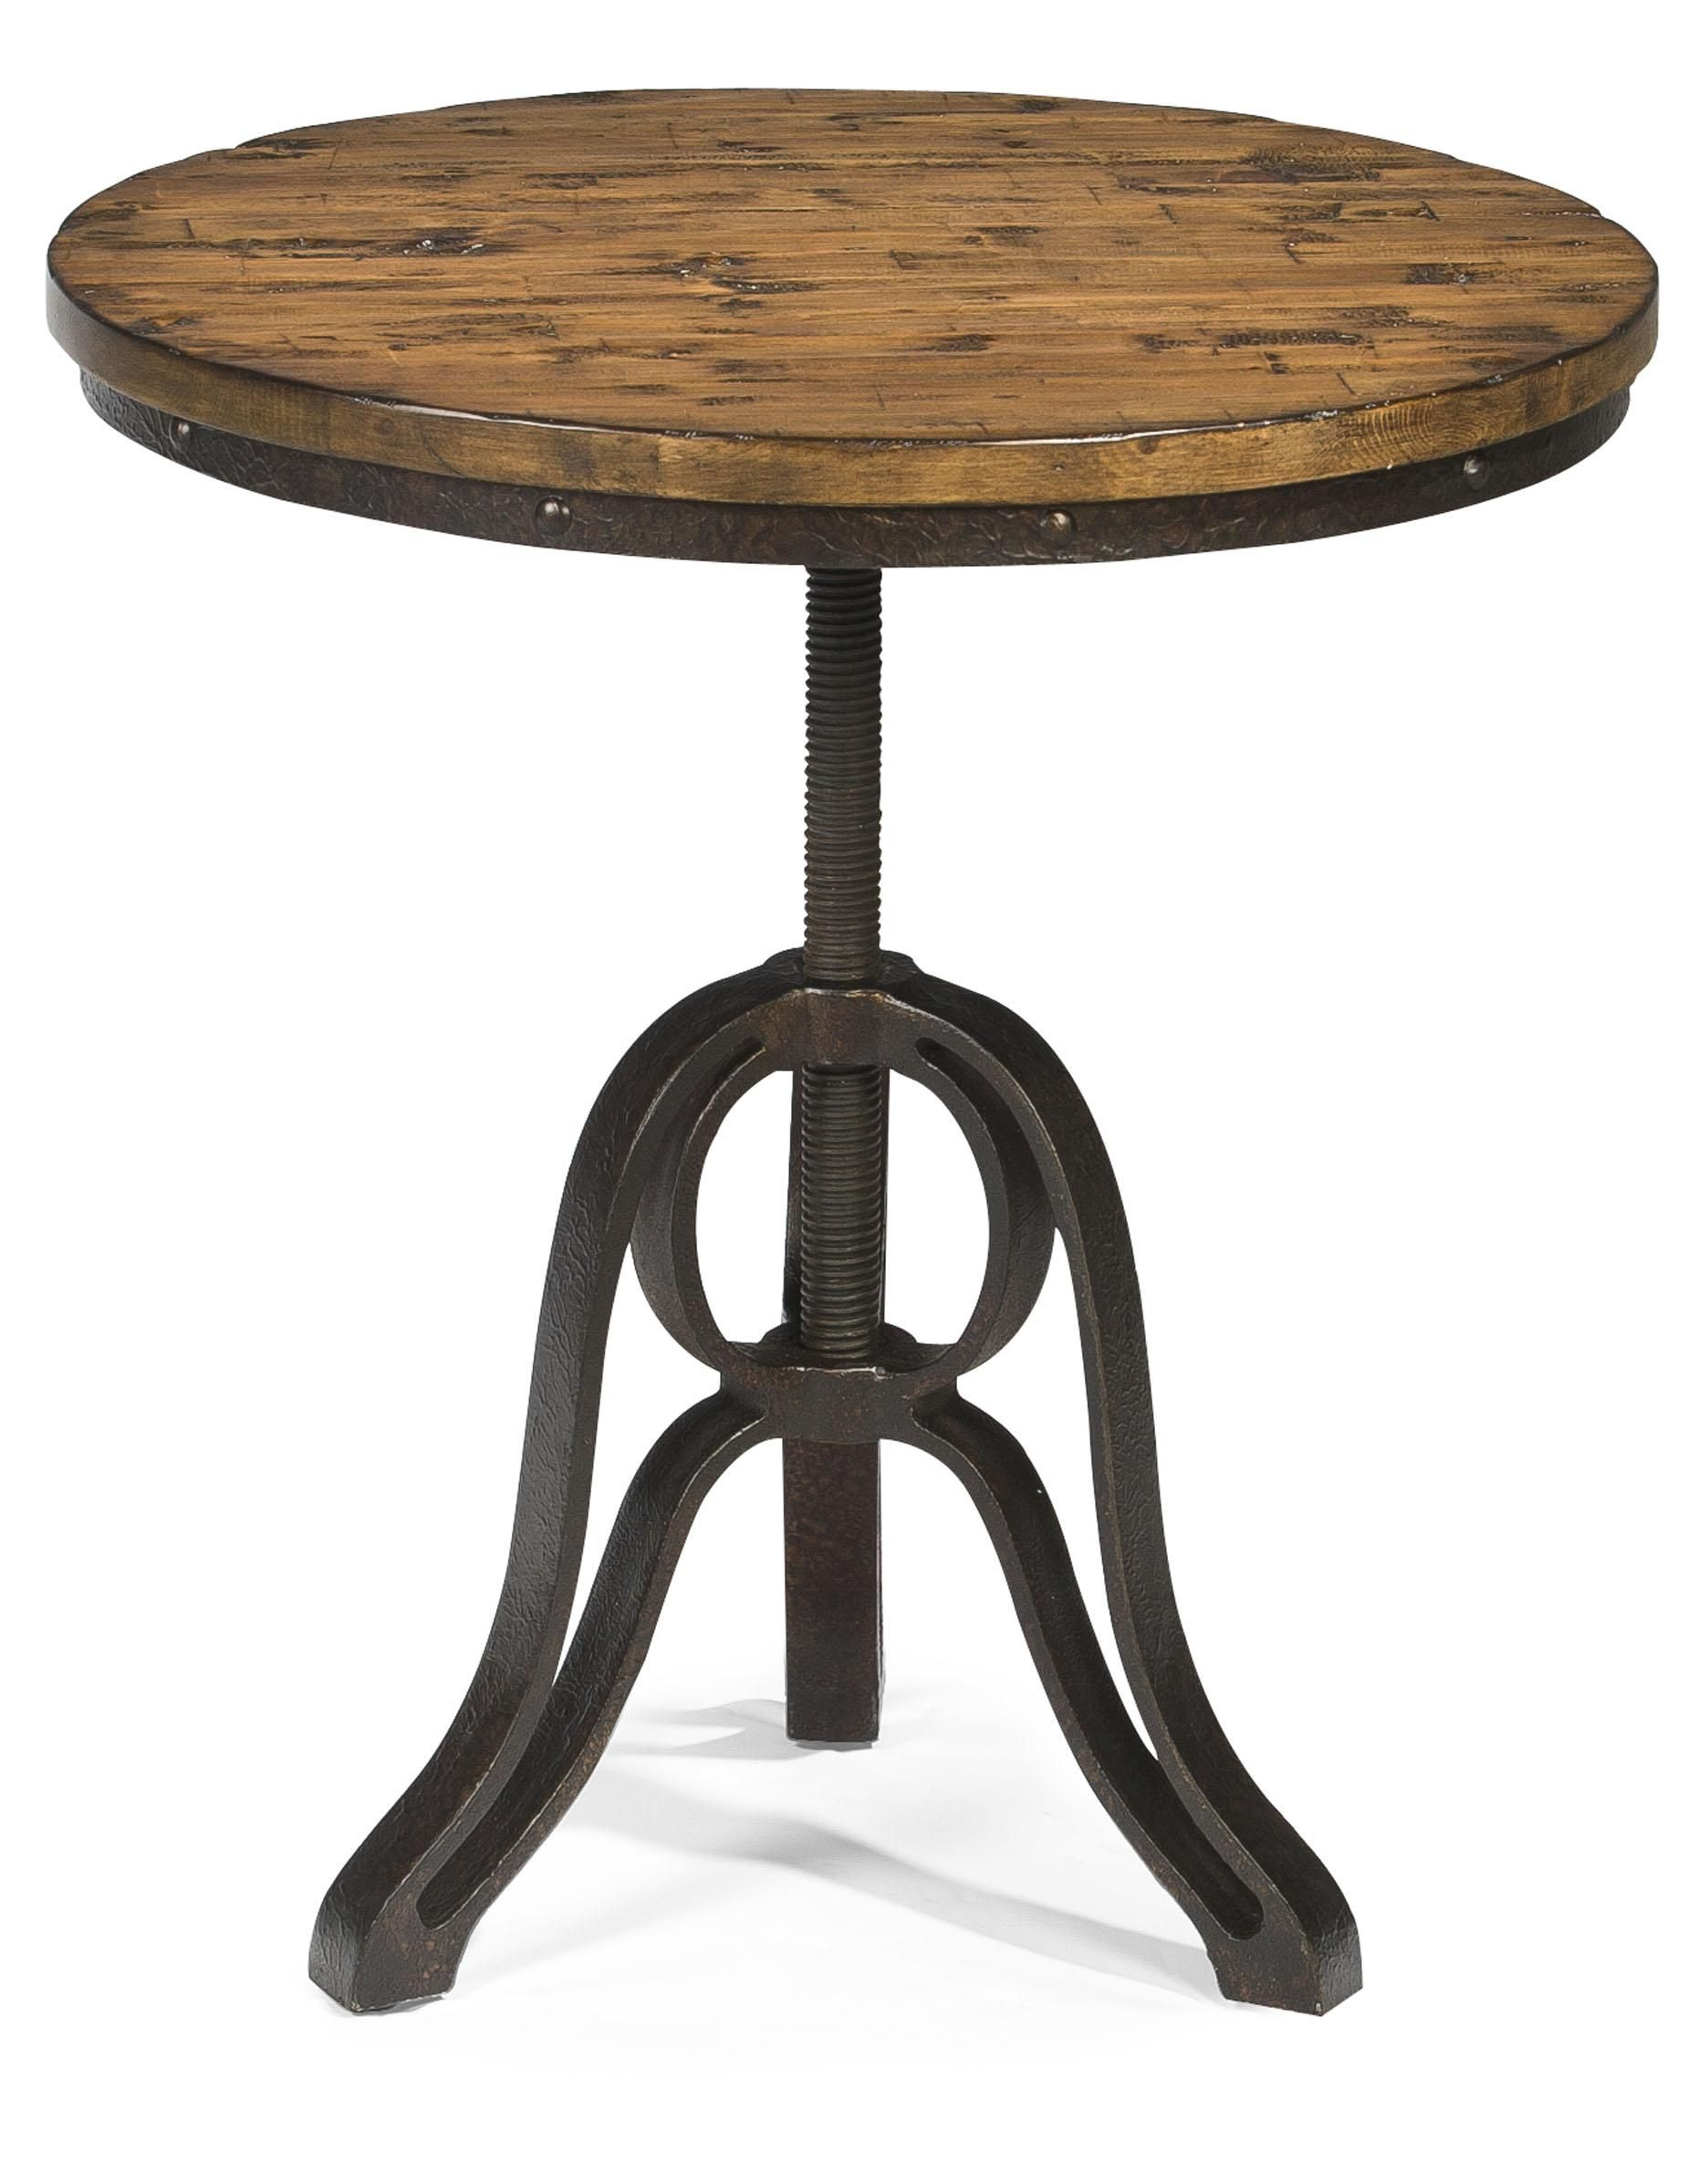 1000+ images about Industrial tables on Pinterest | Round side ...